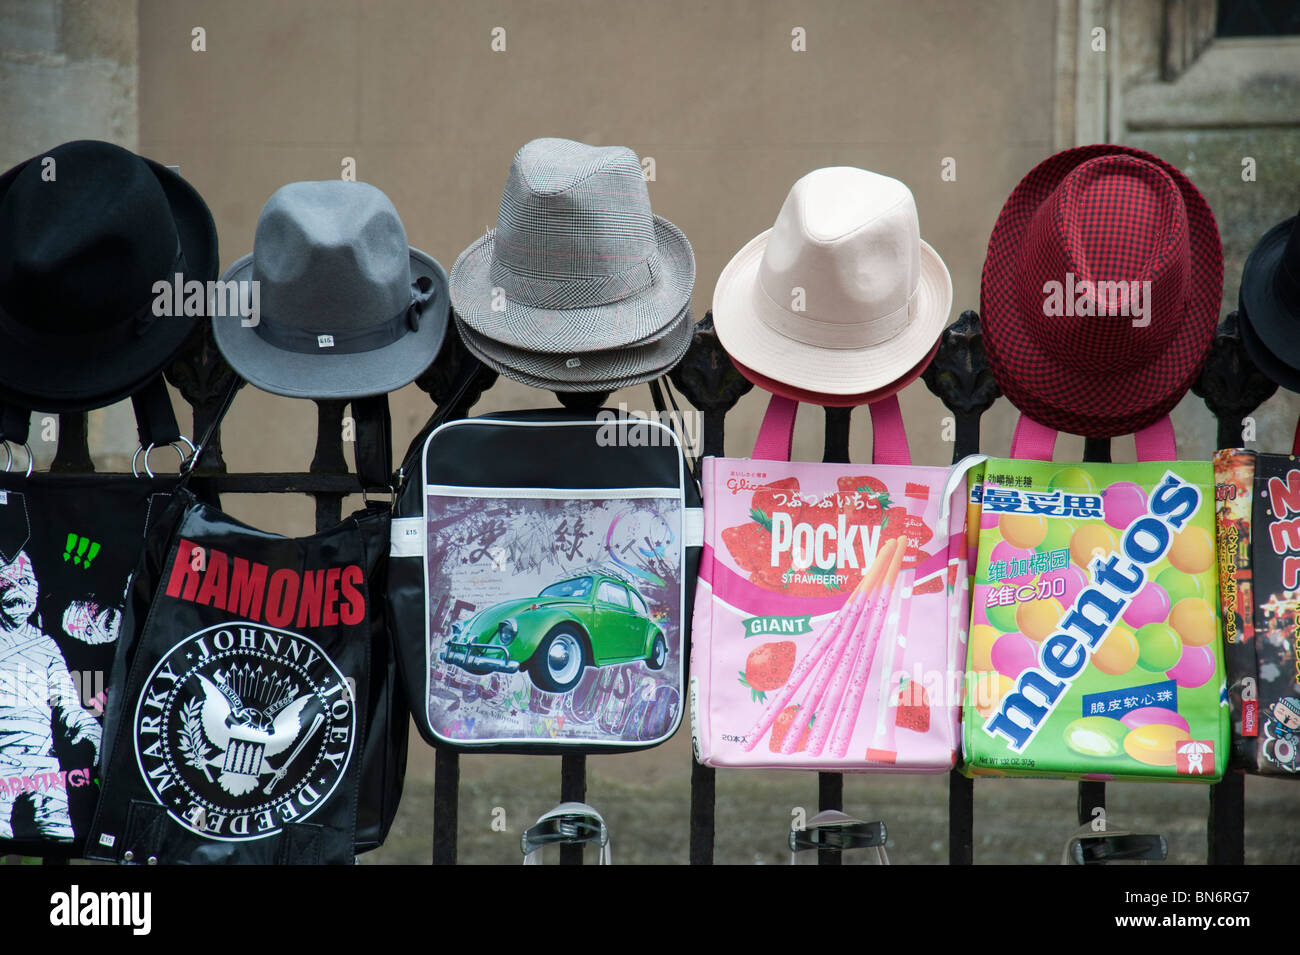 44478b9f51e927 Hats and bags, for sale hanging on a fence on a market stall in Cambridge UK